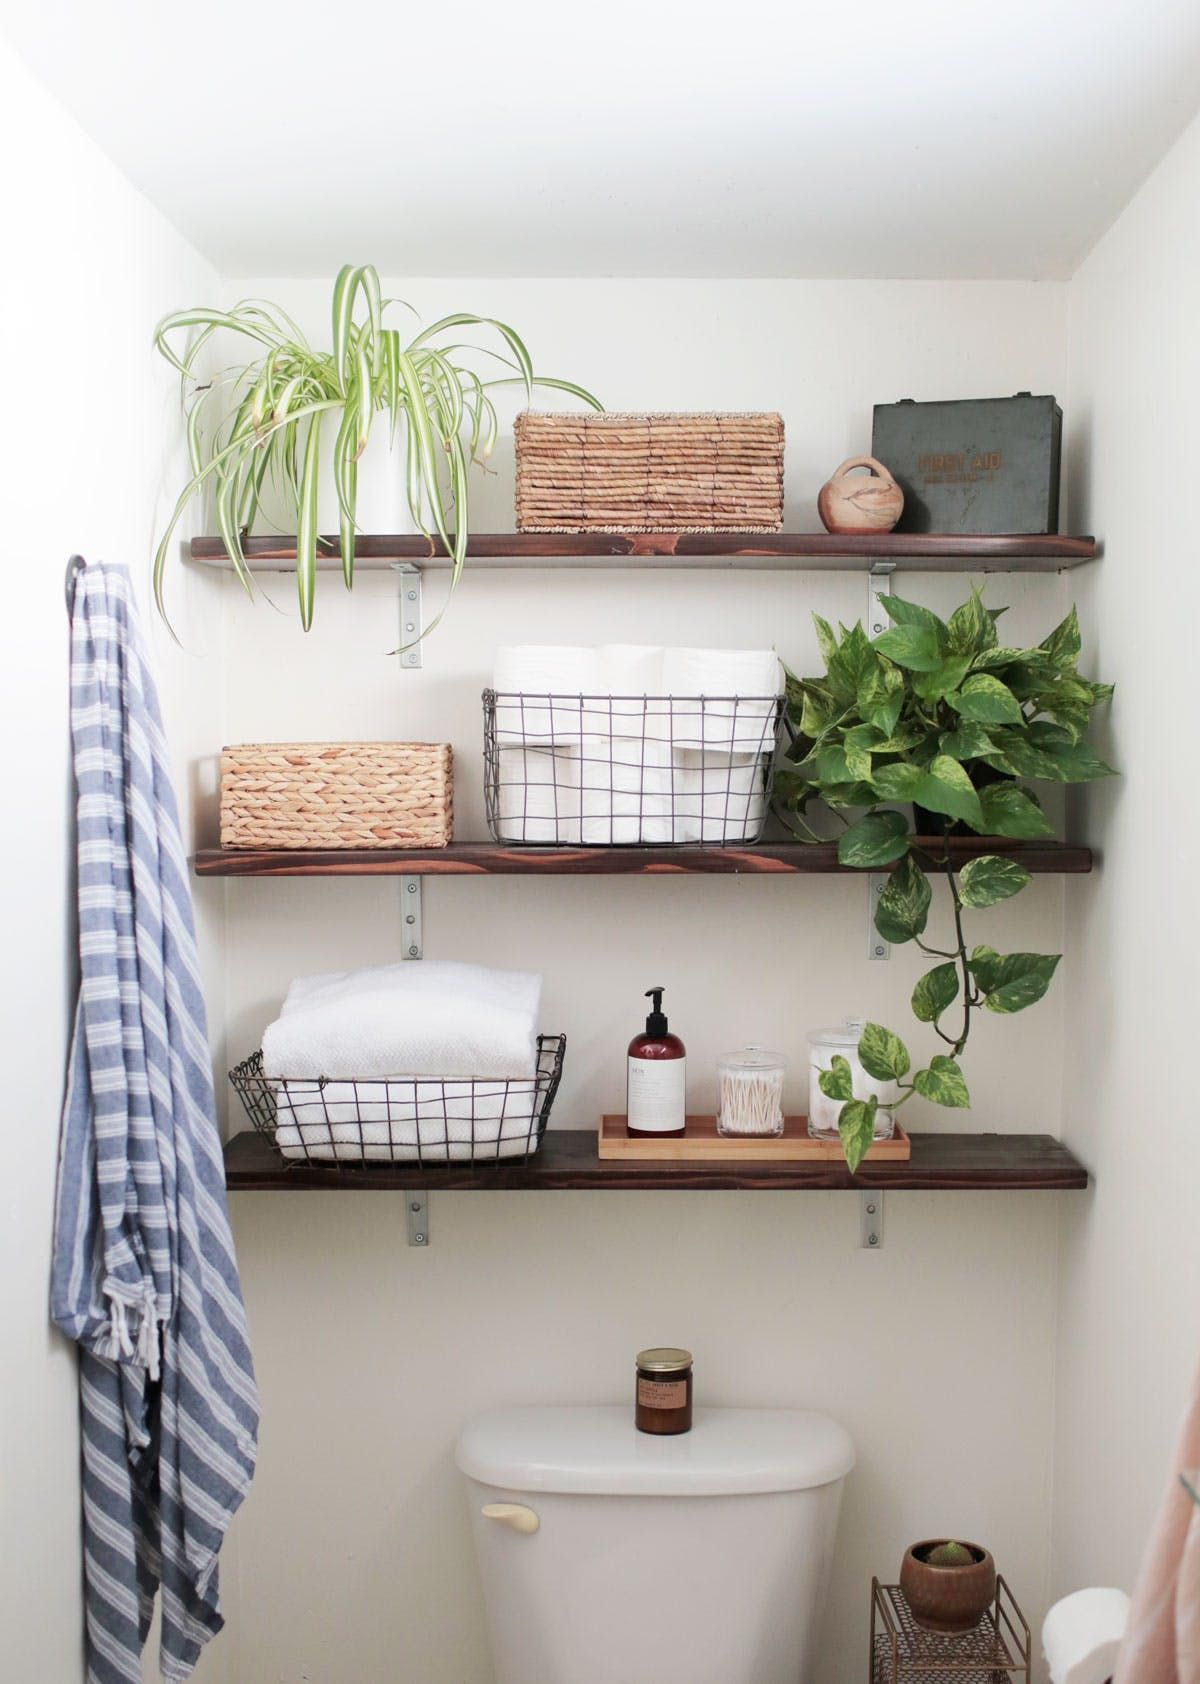 The Best Things You Can Do To Your Bathroom For Under 100 Bathroom Upgrades Cheap Bathrooms Apartment Decor